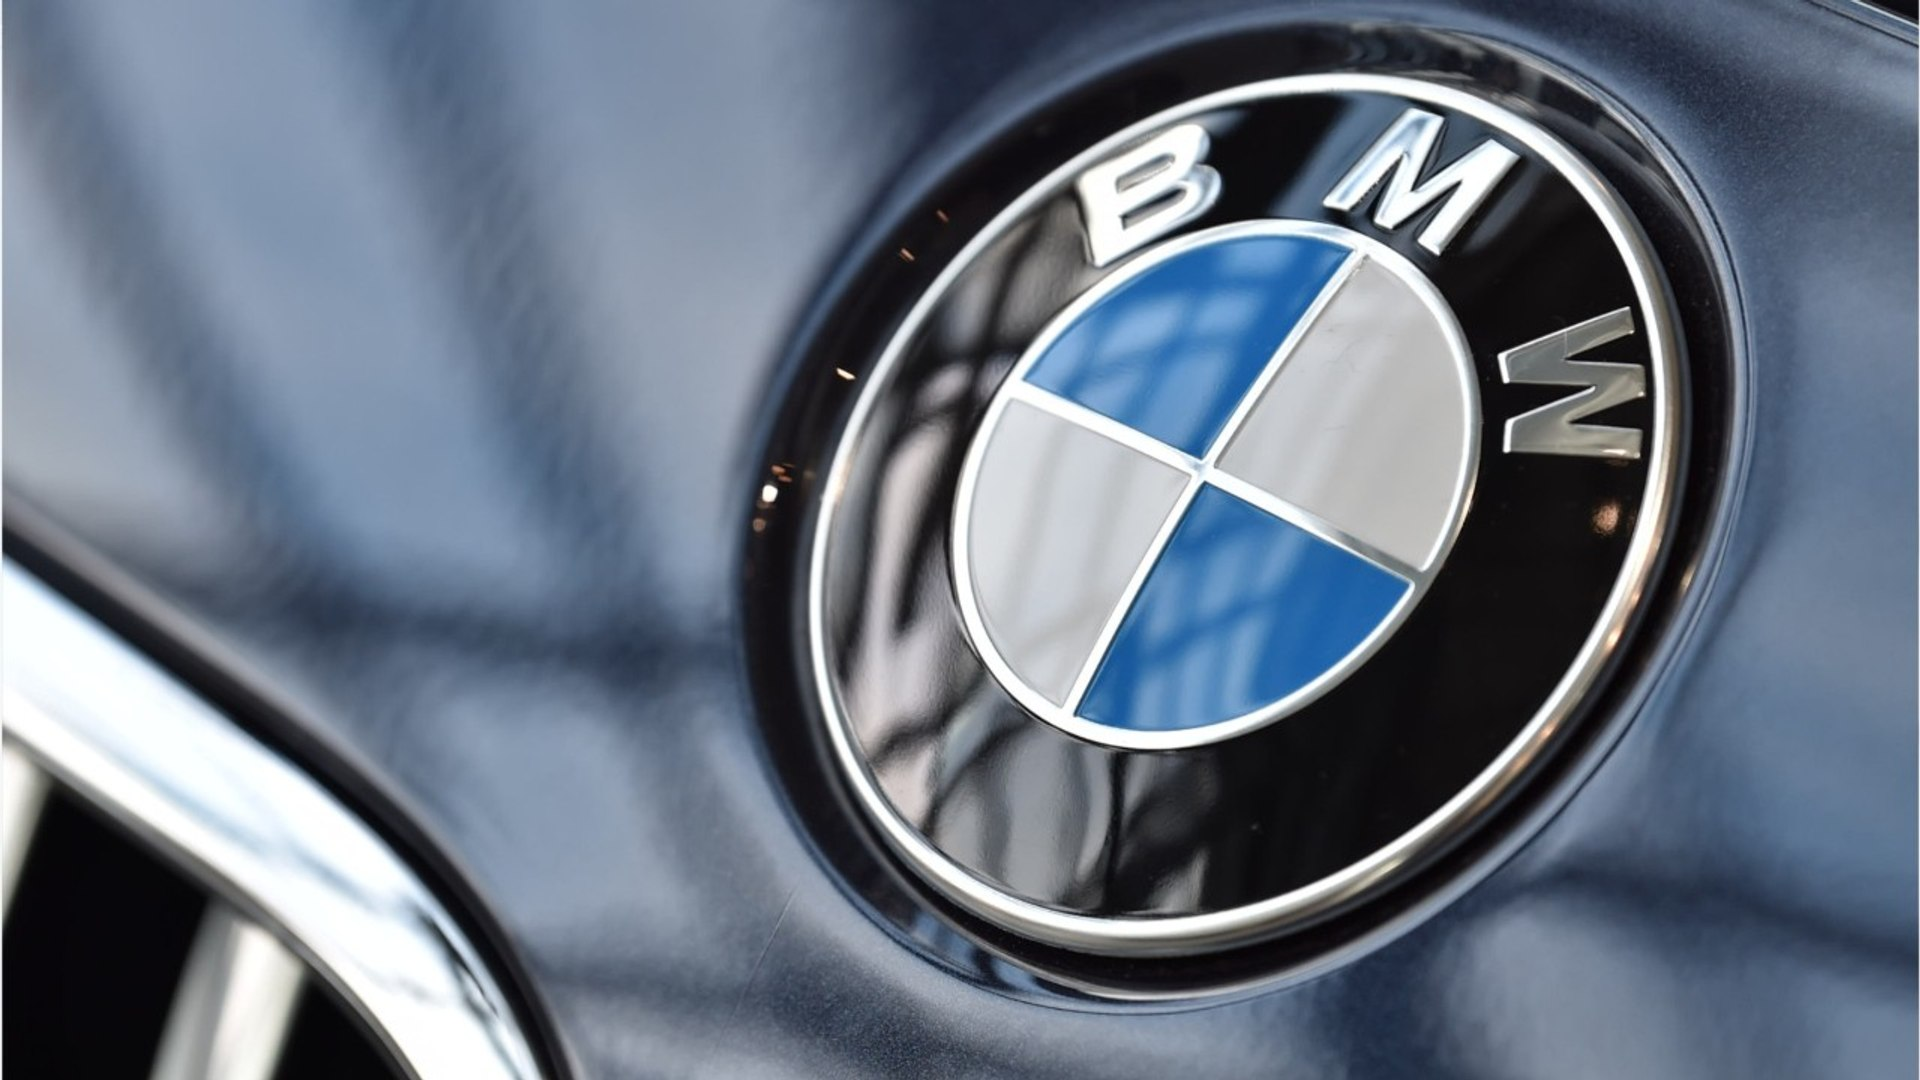 BMW Automatic Door Chopped Off Engineer's Thumb?